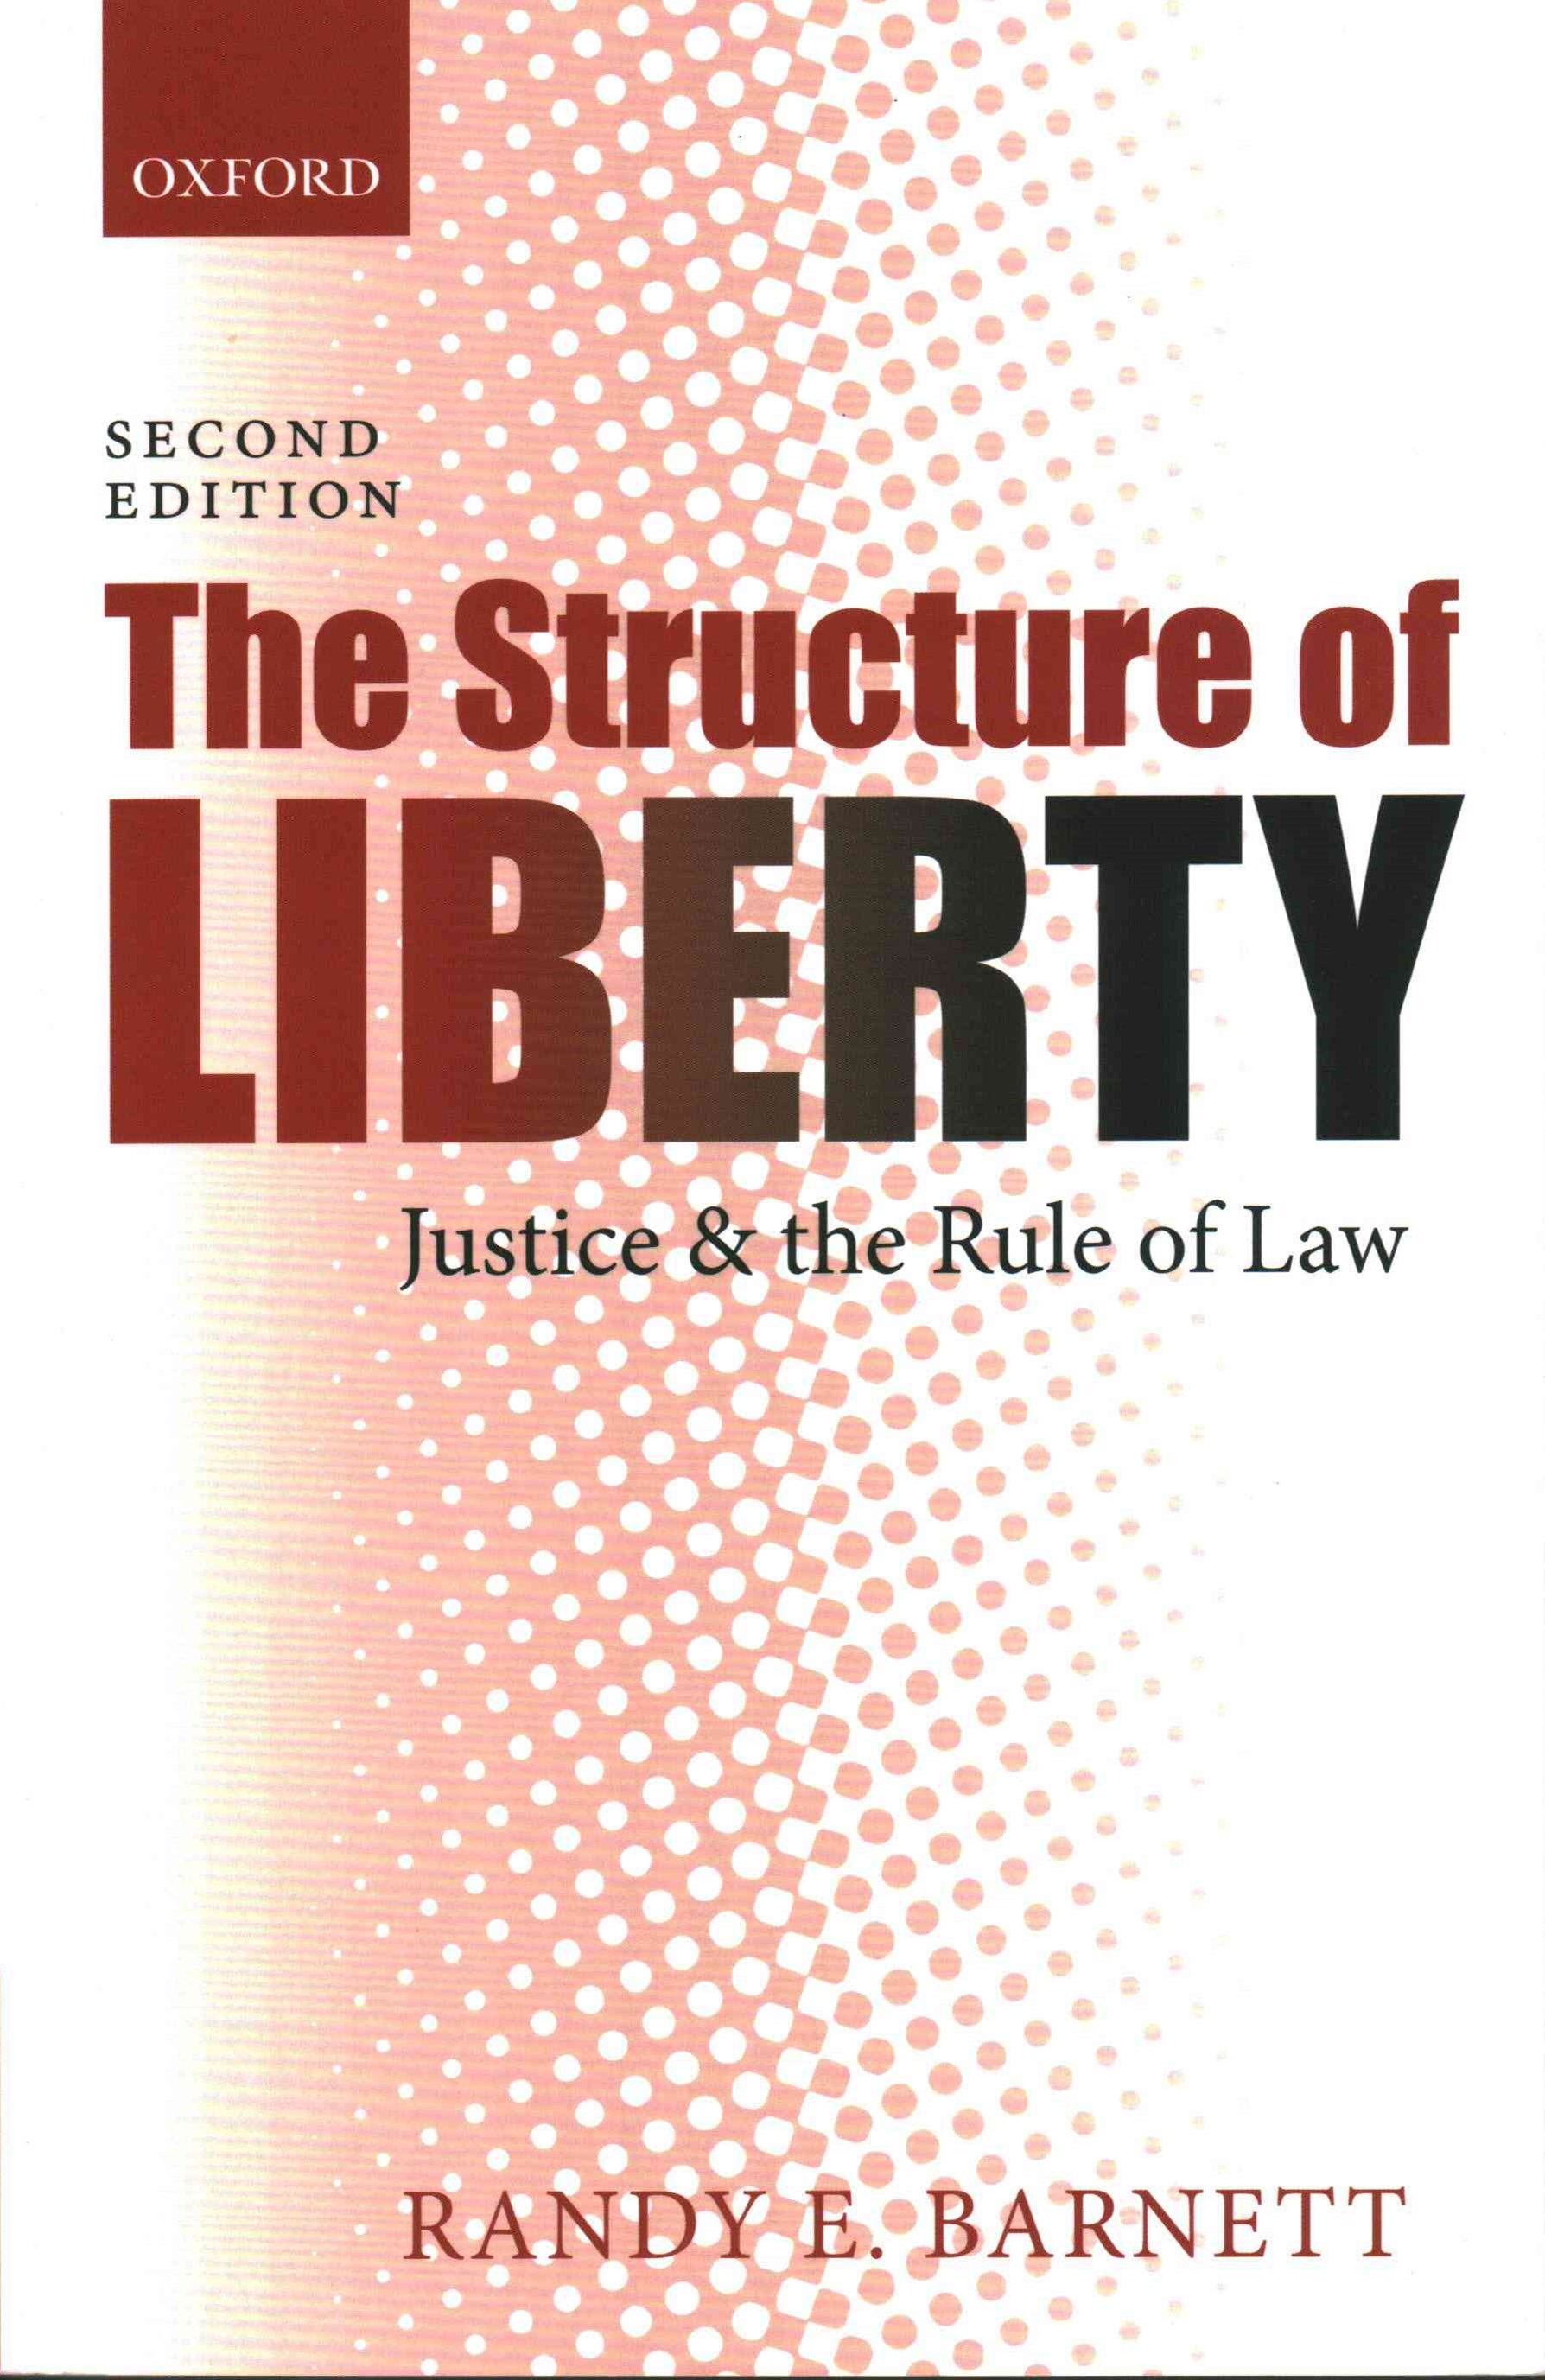 The Structure of Liberty